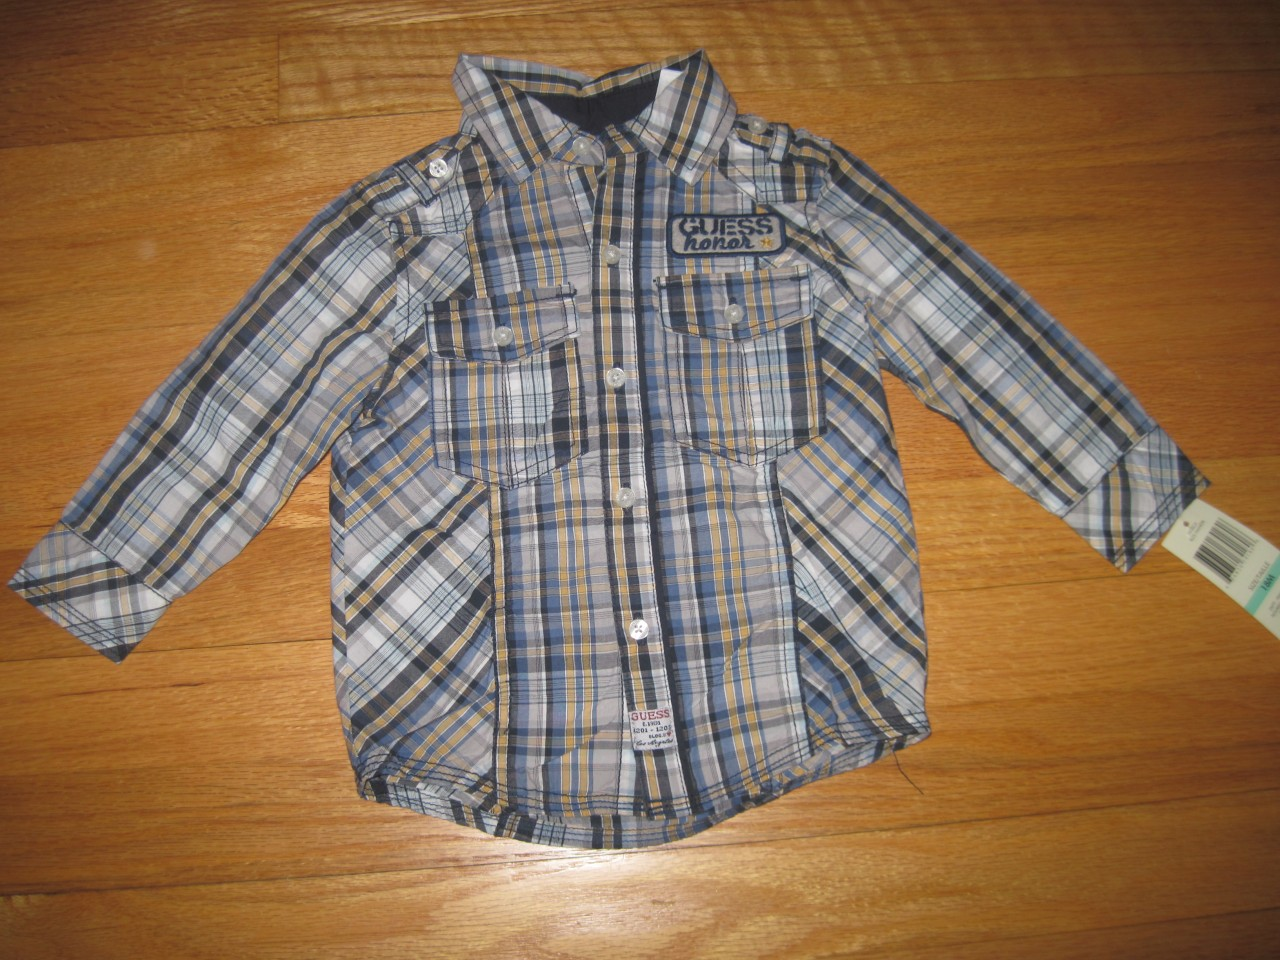 AUTHENTIC-GUESS-LONG-SLEEVE-BUTTON-DOWN-SHIRT-BABY-BOYS-SIZE-12-MONTHS-NWT